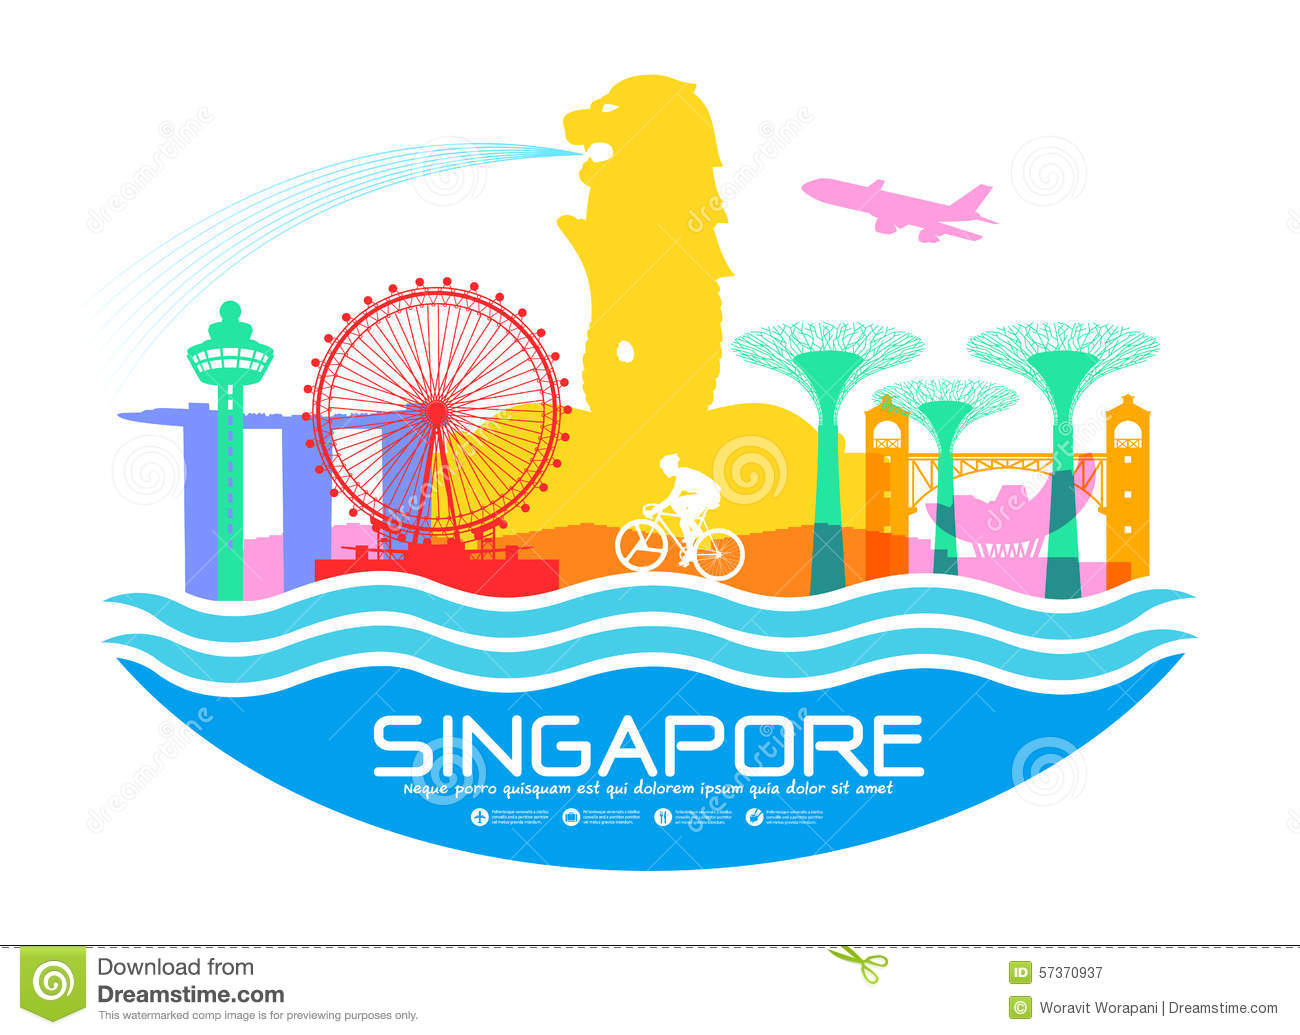 Apply for singapore tourist visa in bangalore dating 8